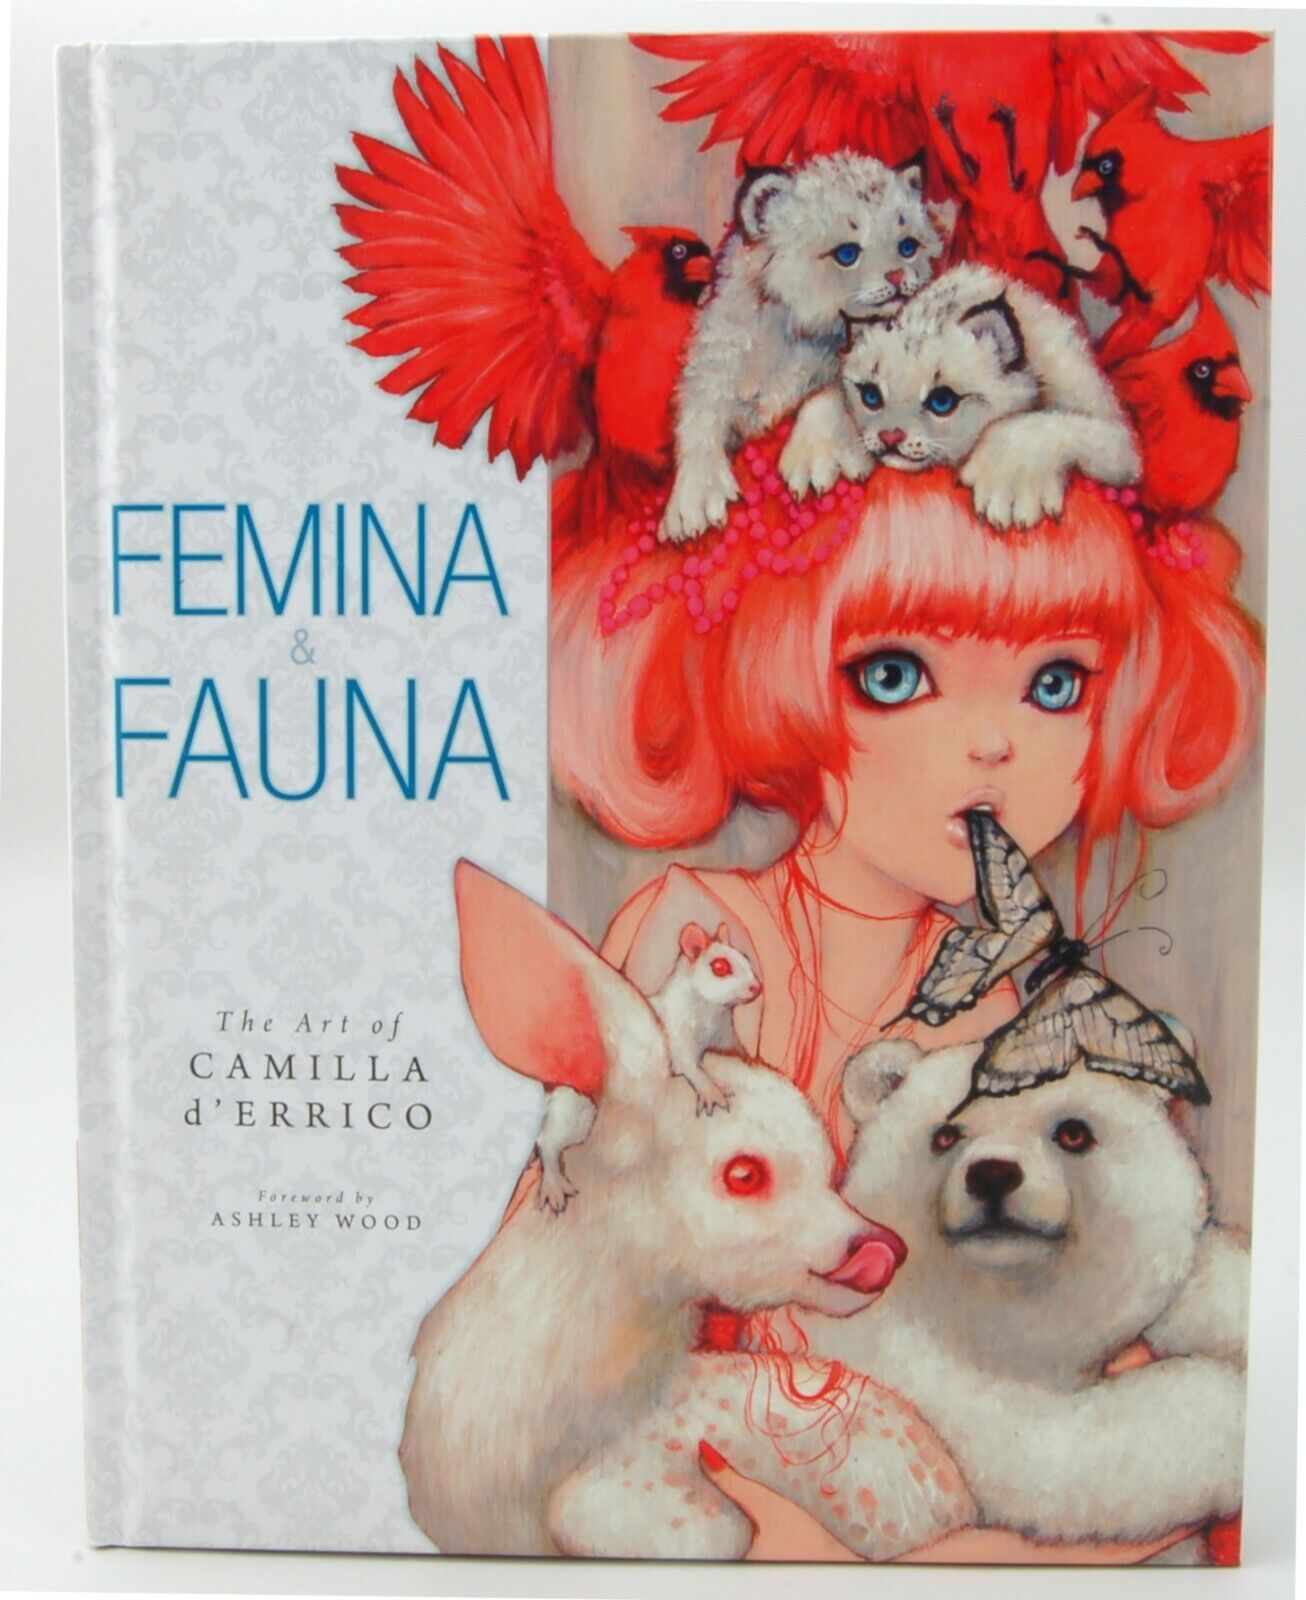 Купить Femina & Fauna The Art of Camilla d'Errico Hardcover